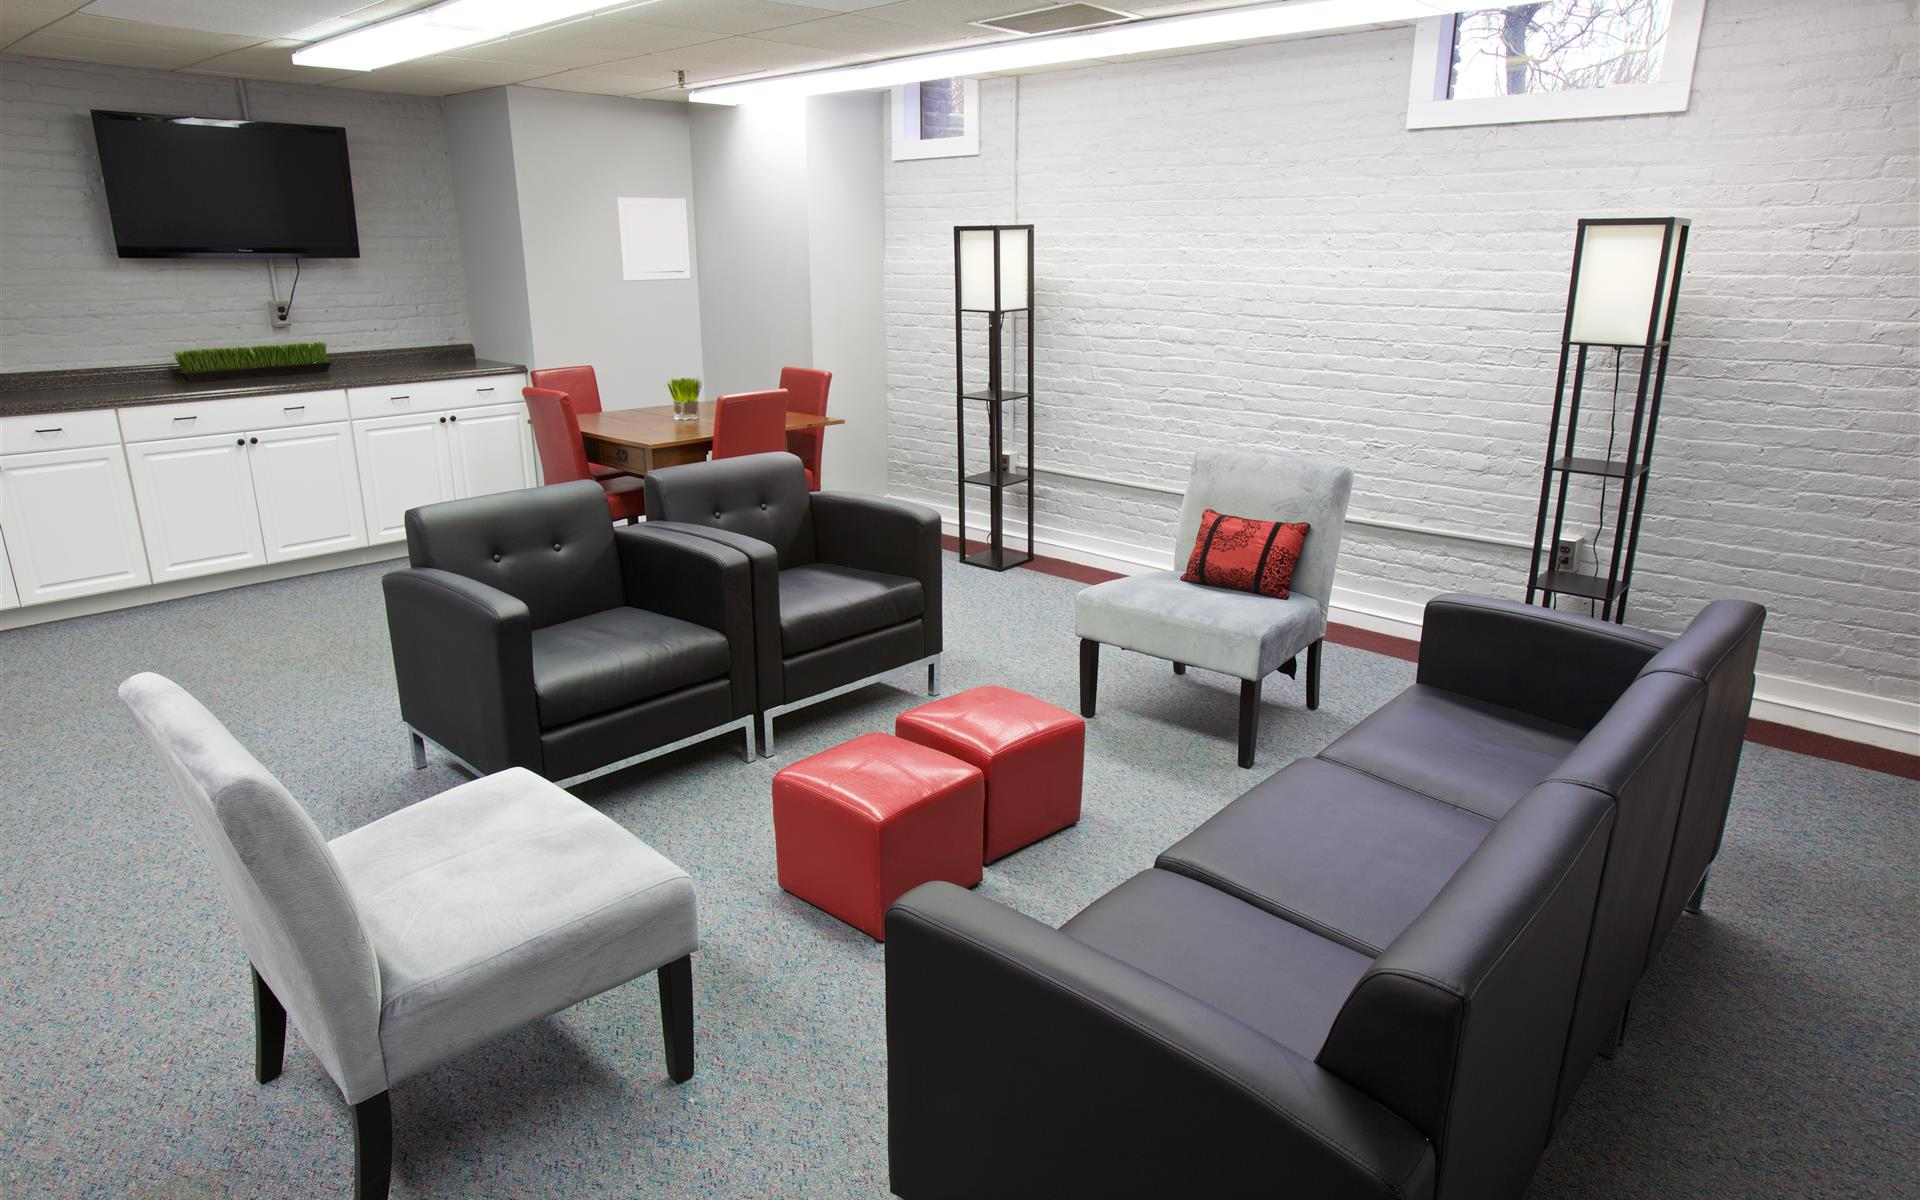 Rutgers University Inn and Conference Center - Scarlet All Purpose Room